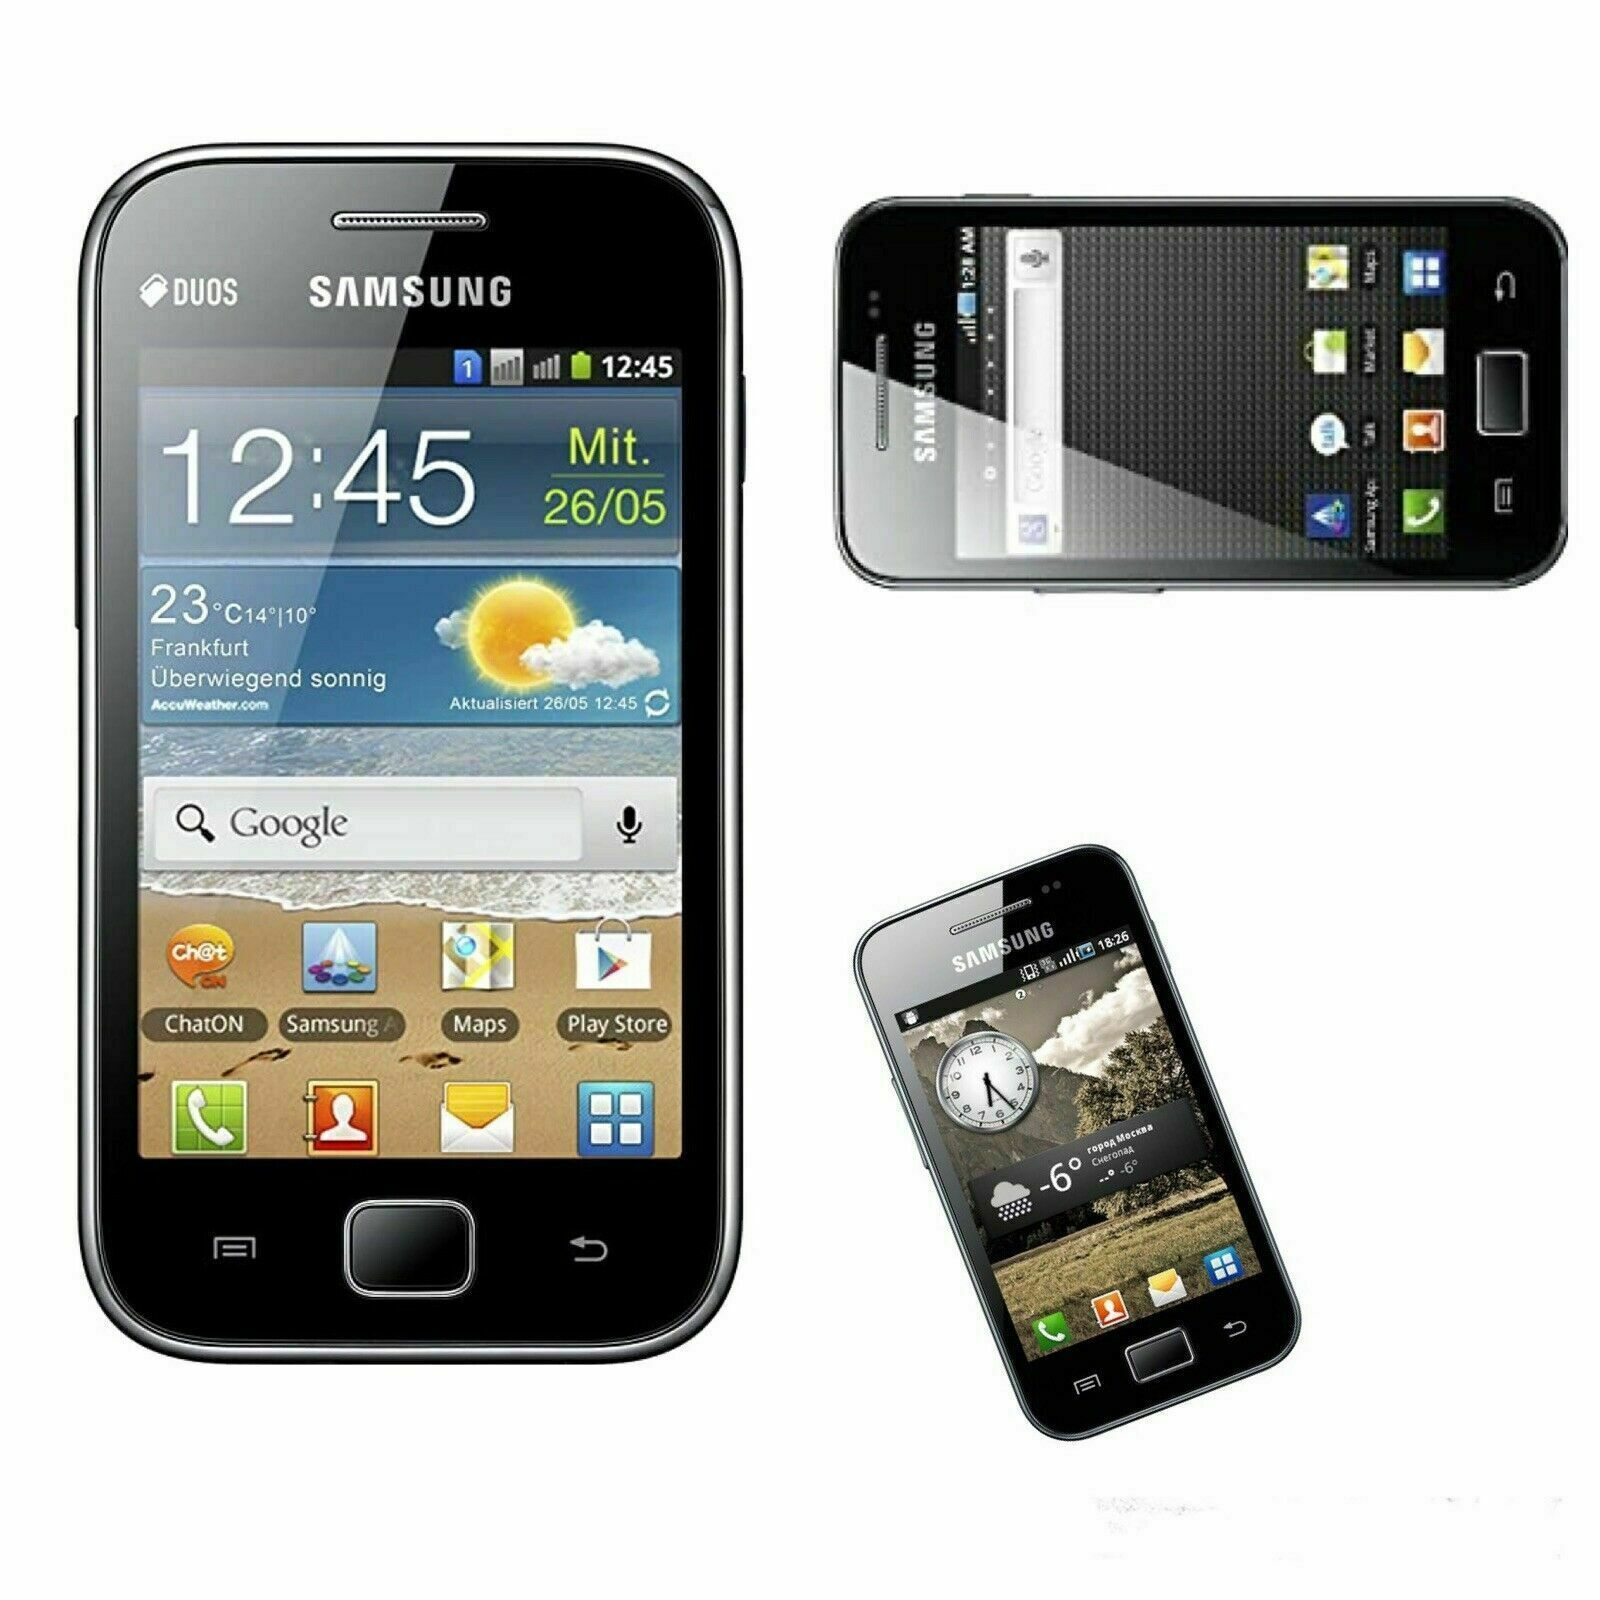 Android Phone - New Conditio  Samsung Galaxy Ace GT-S5830i Unlocked Android Basic Smart Phone UK